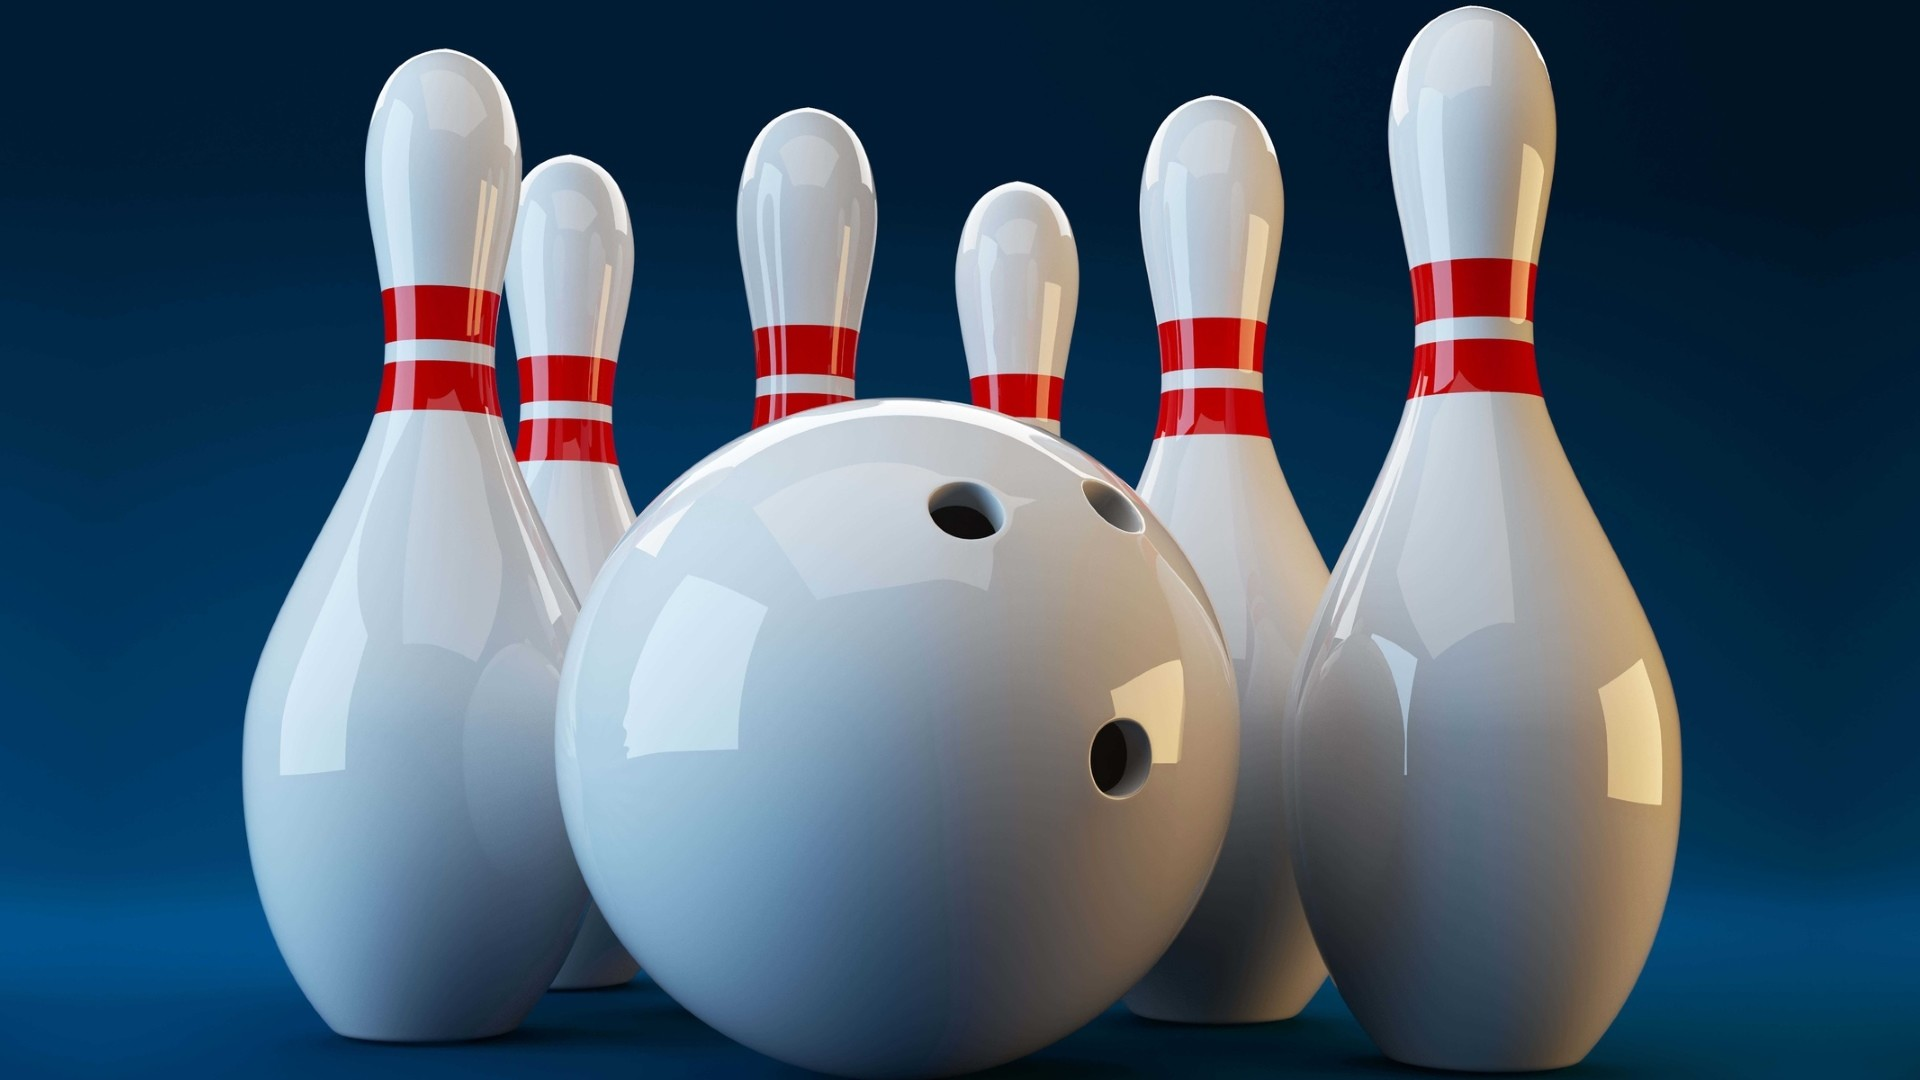 White skittles and ball – bowling HD background: